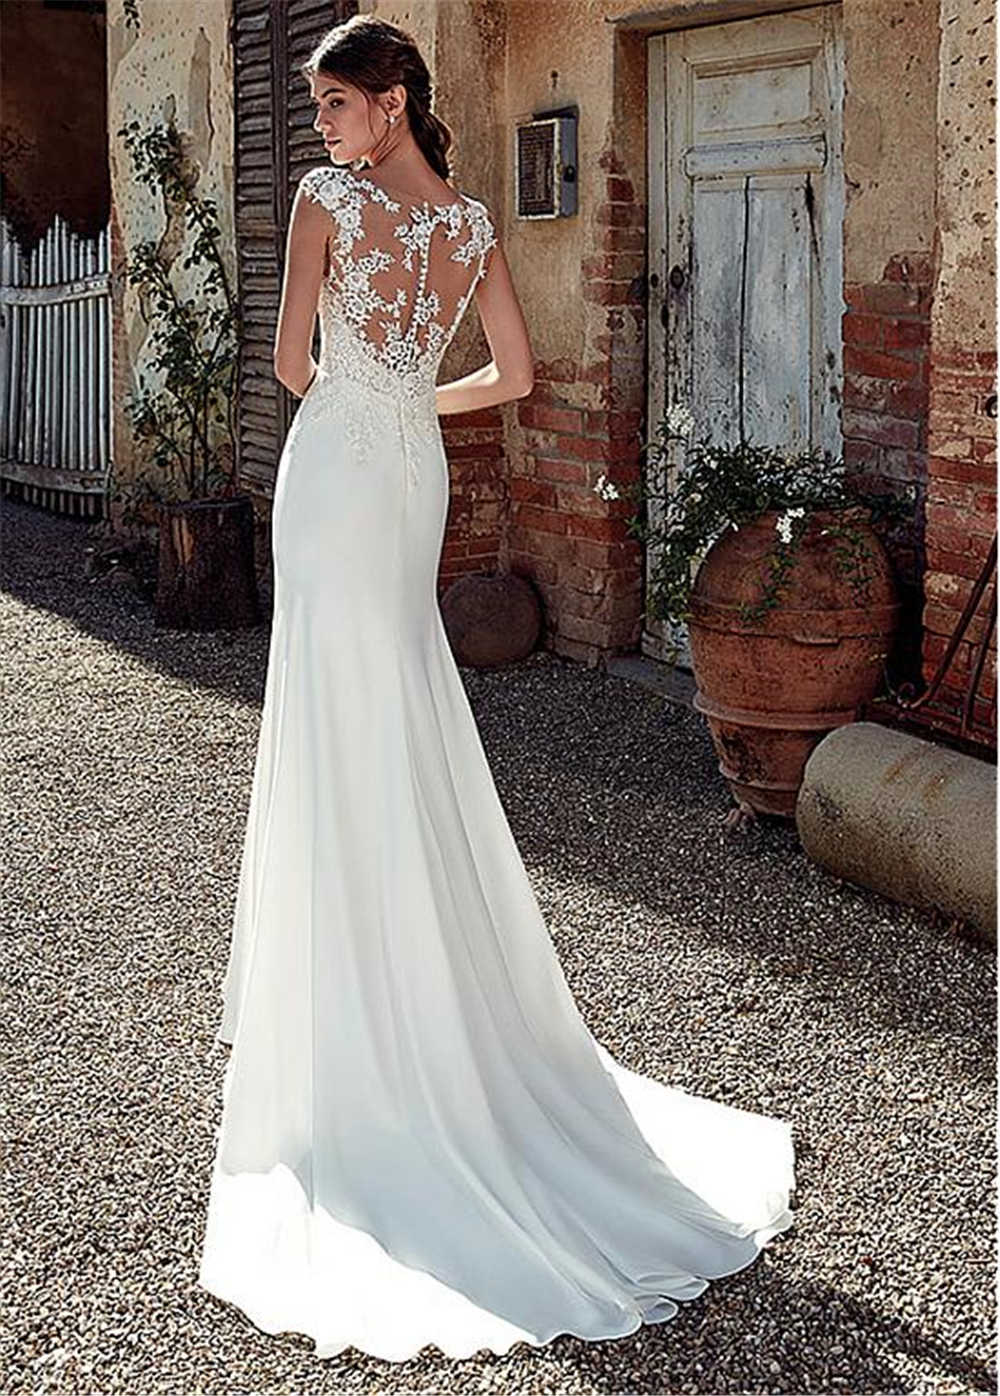 5683cfe21264 ... Modest Soft Satin Bateau Neckline Mermaid Wedding Dresses With Lace  Appliques Sheer Bridal Dress Illusion Back ...